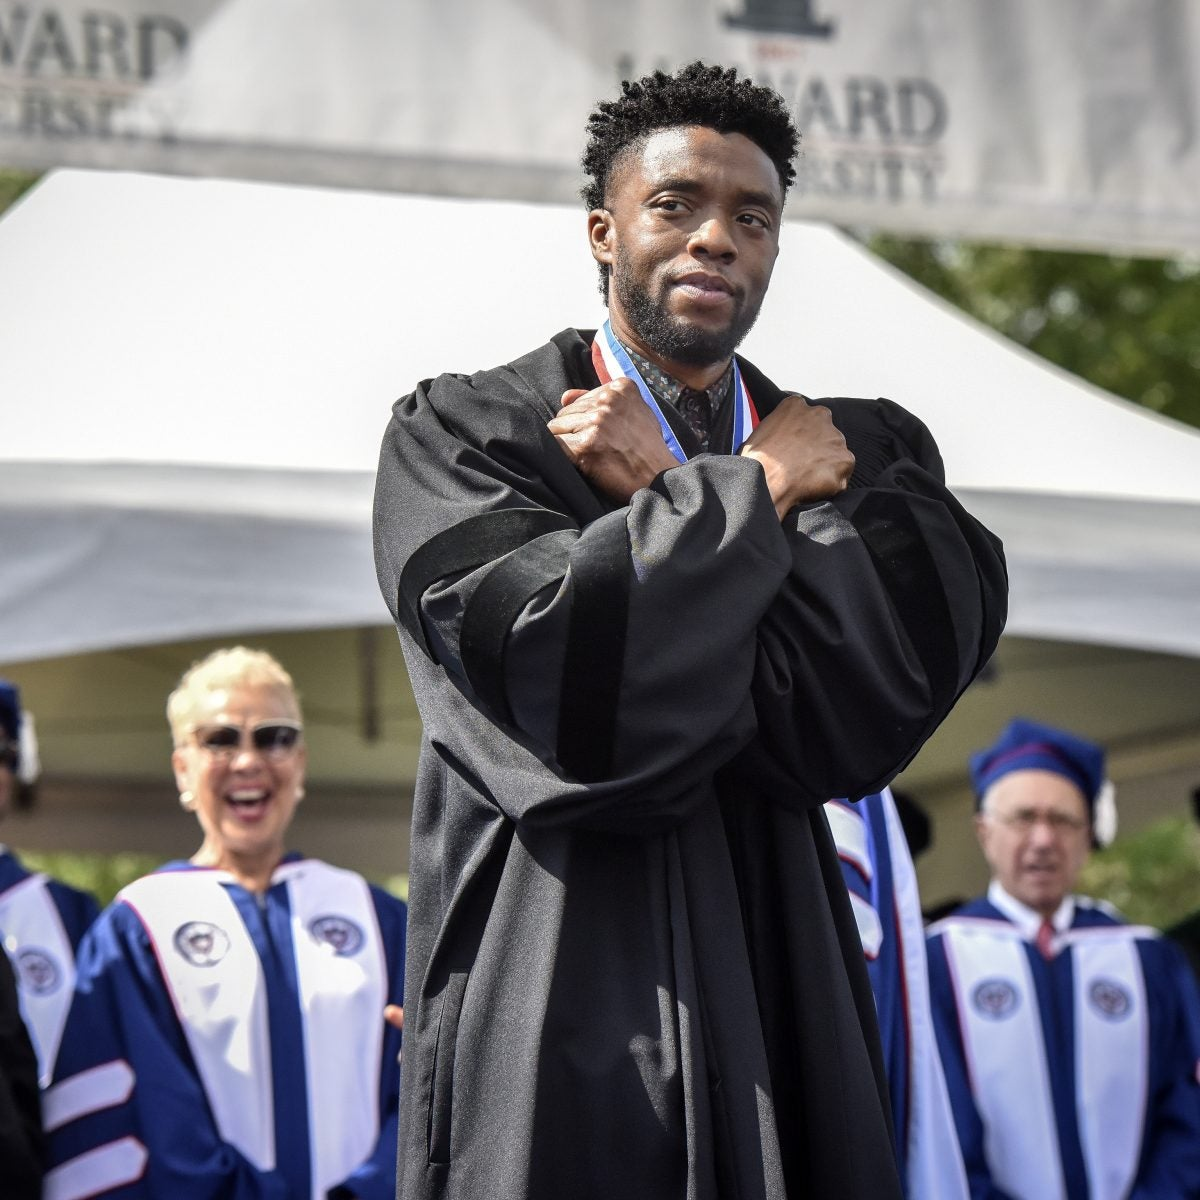 Howard University's College of Fine Arts Will Be Renamed After Alum Chadwick Boseman